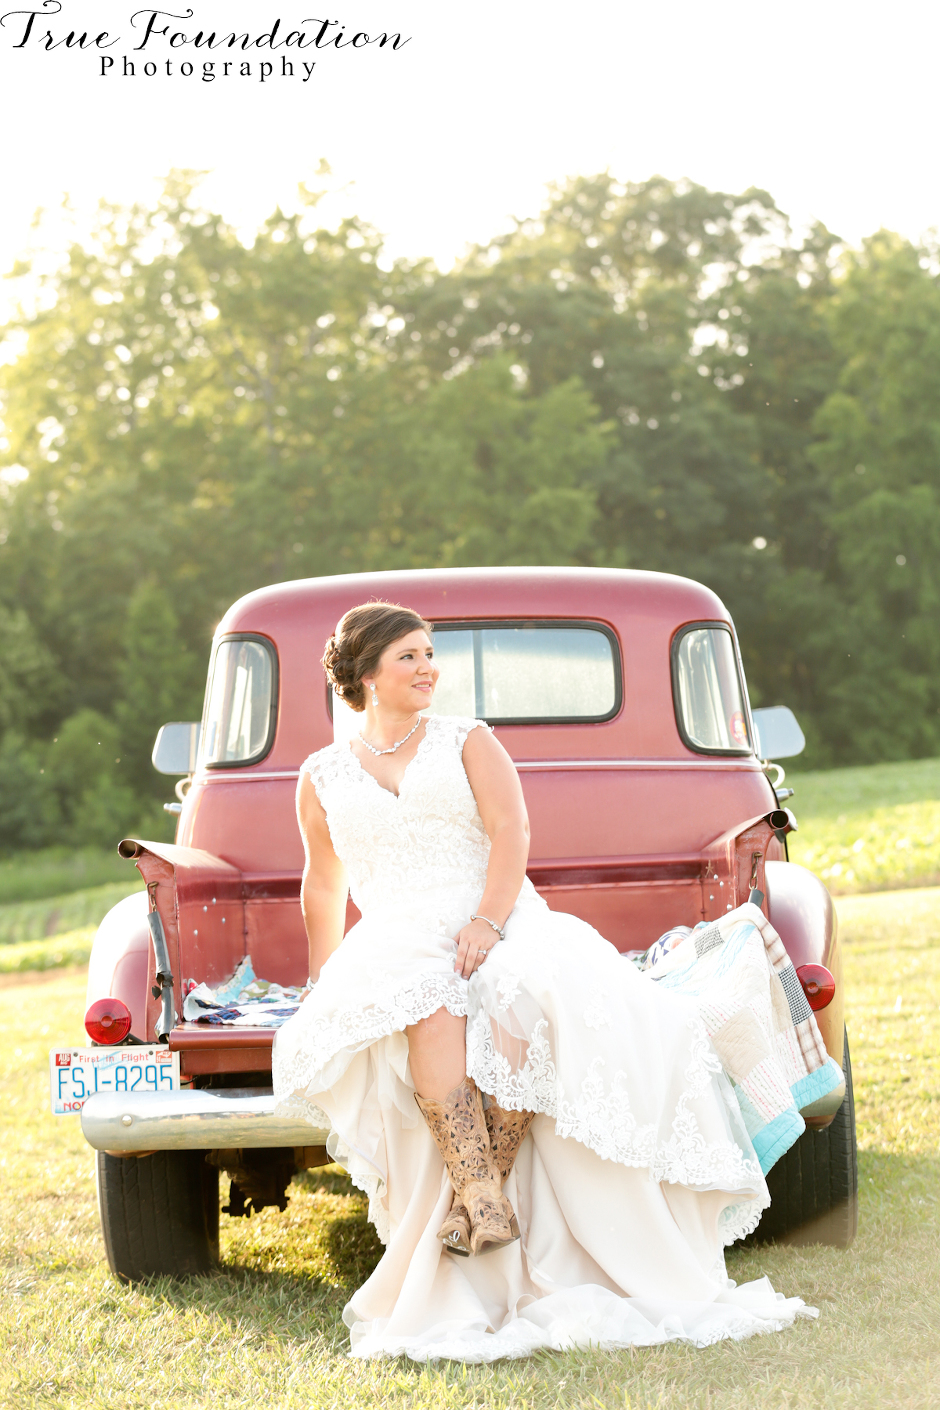 Bridal - Portrait - Photography - Photos - Hendersonville - NC - Shelby - Photographers - Farm - Country - Pinterest - Bride (38)